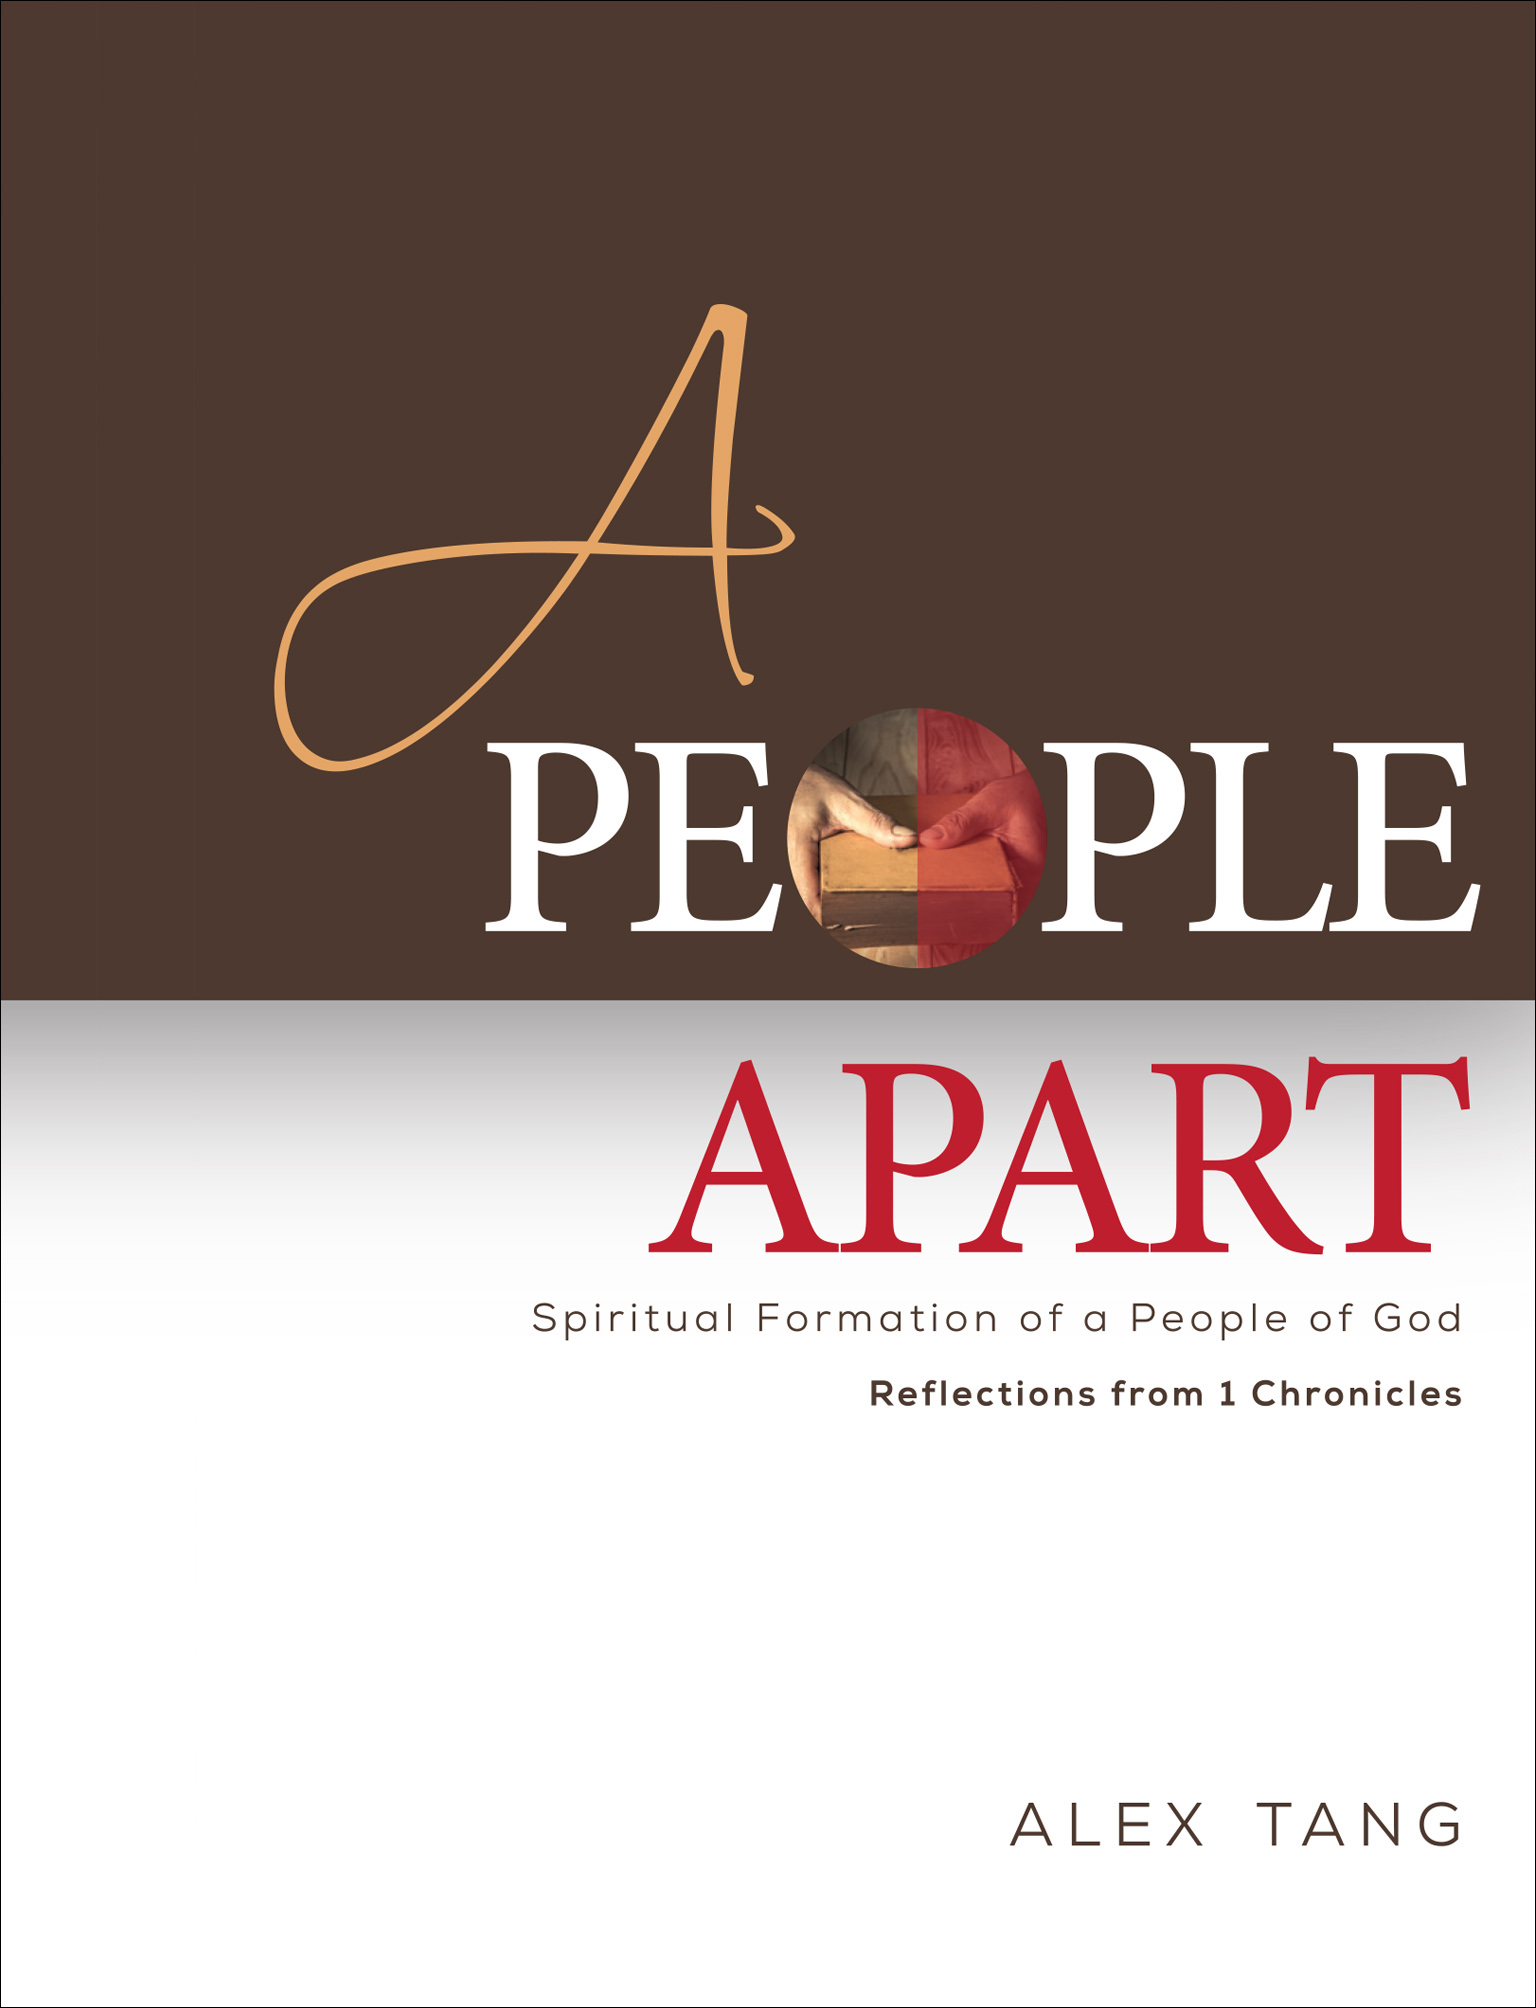 A People Apart